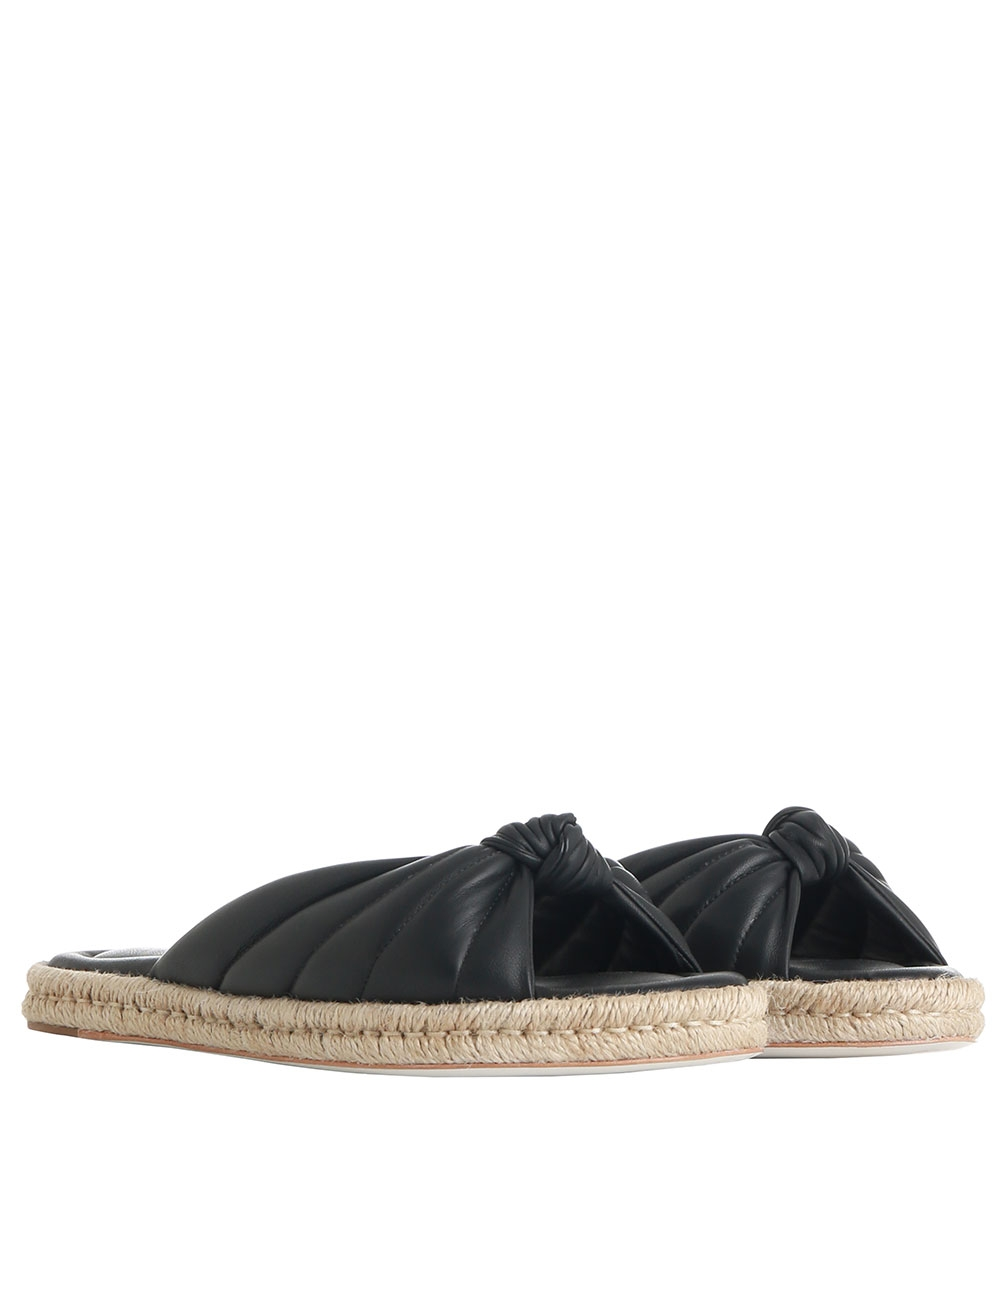 Knot Espadrille